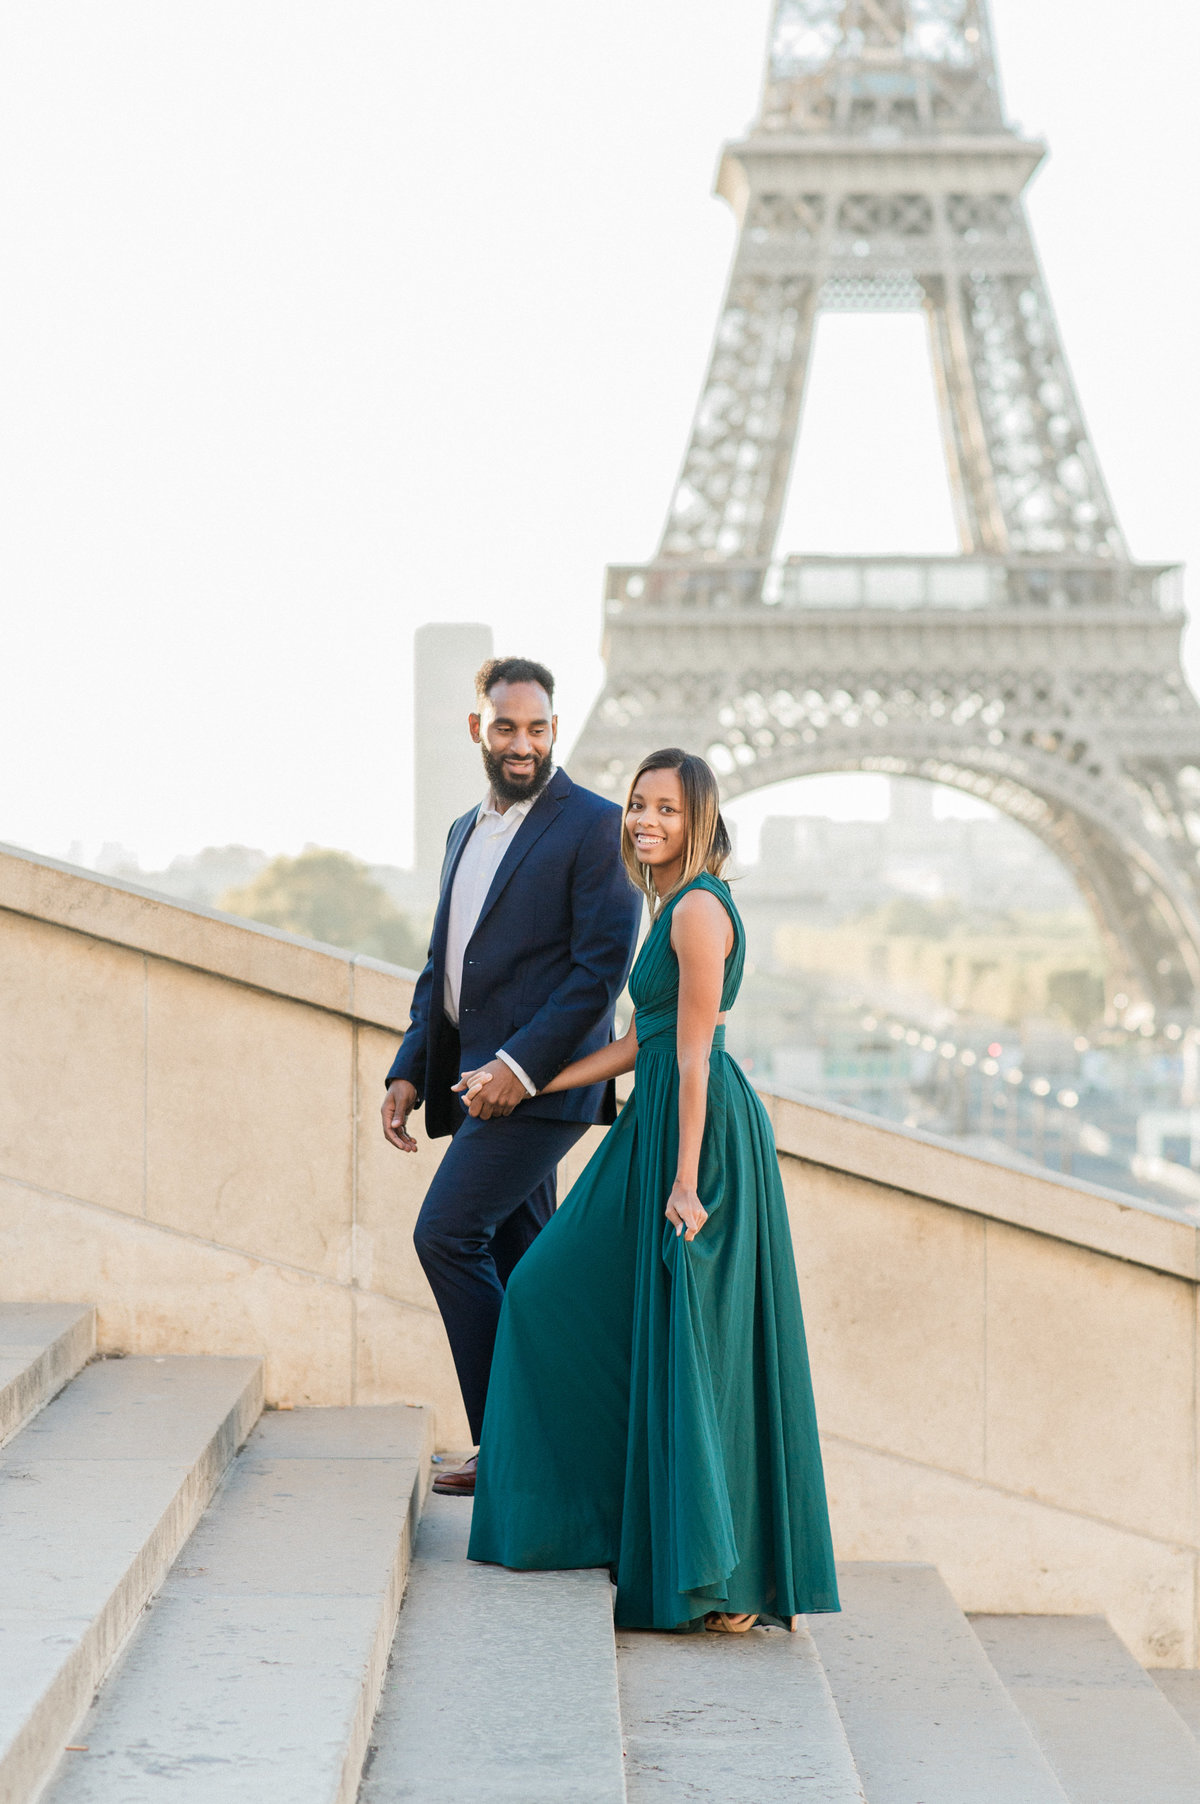 engaged couple walking up stairs at trocadero with eiffel tower in background